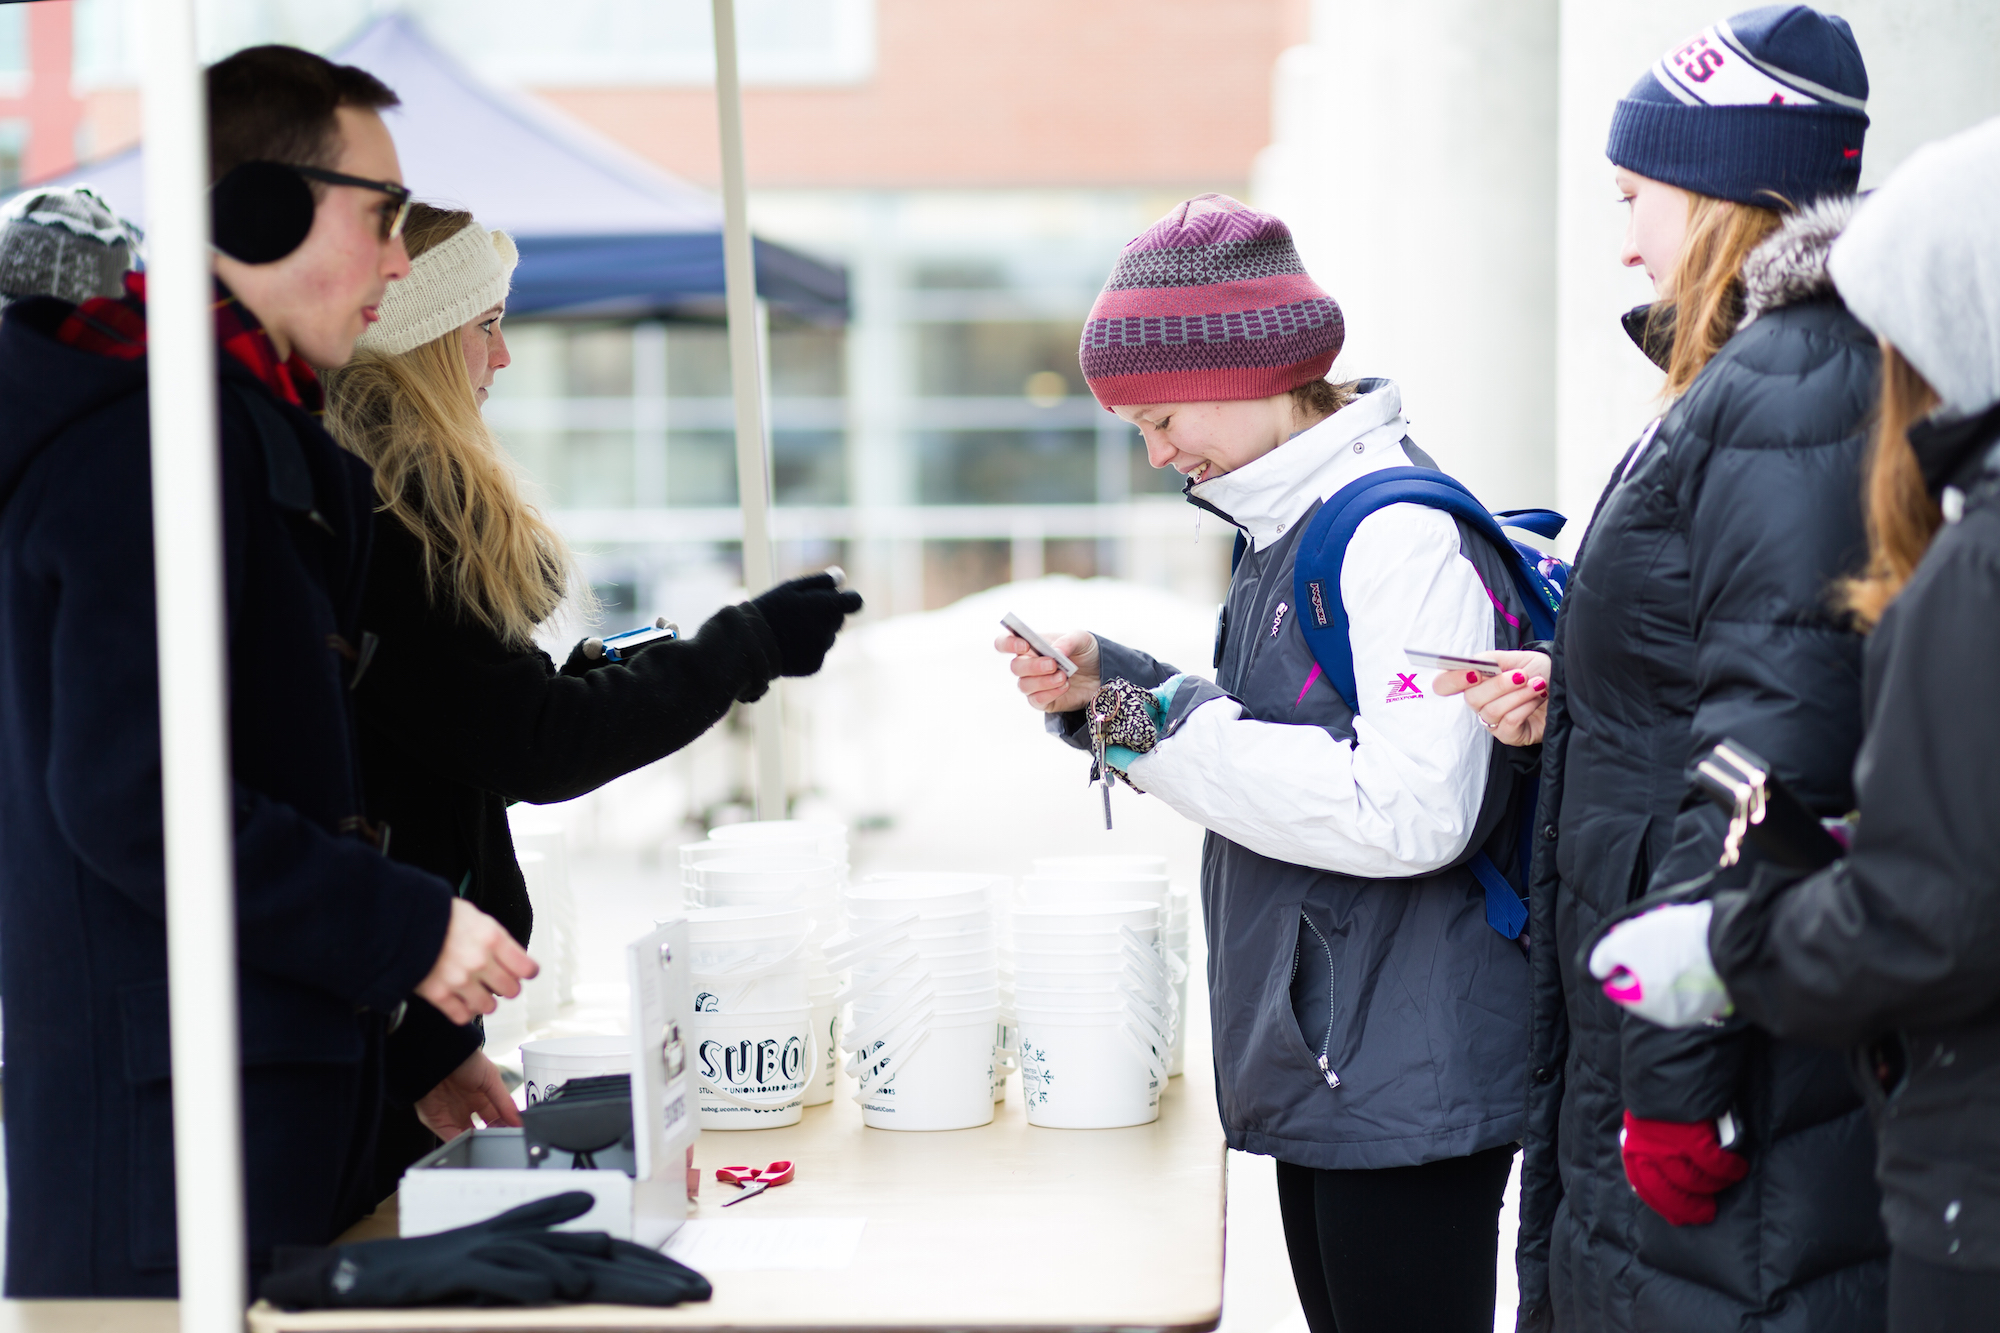 SUBOG hosts there annual One Ton Sundae ice cream event Friday afternoon in Storrs. Students line up to fill there buckets with as much ice cream as they would like. (Tyler Benton/The Daily Campus)